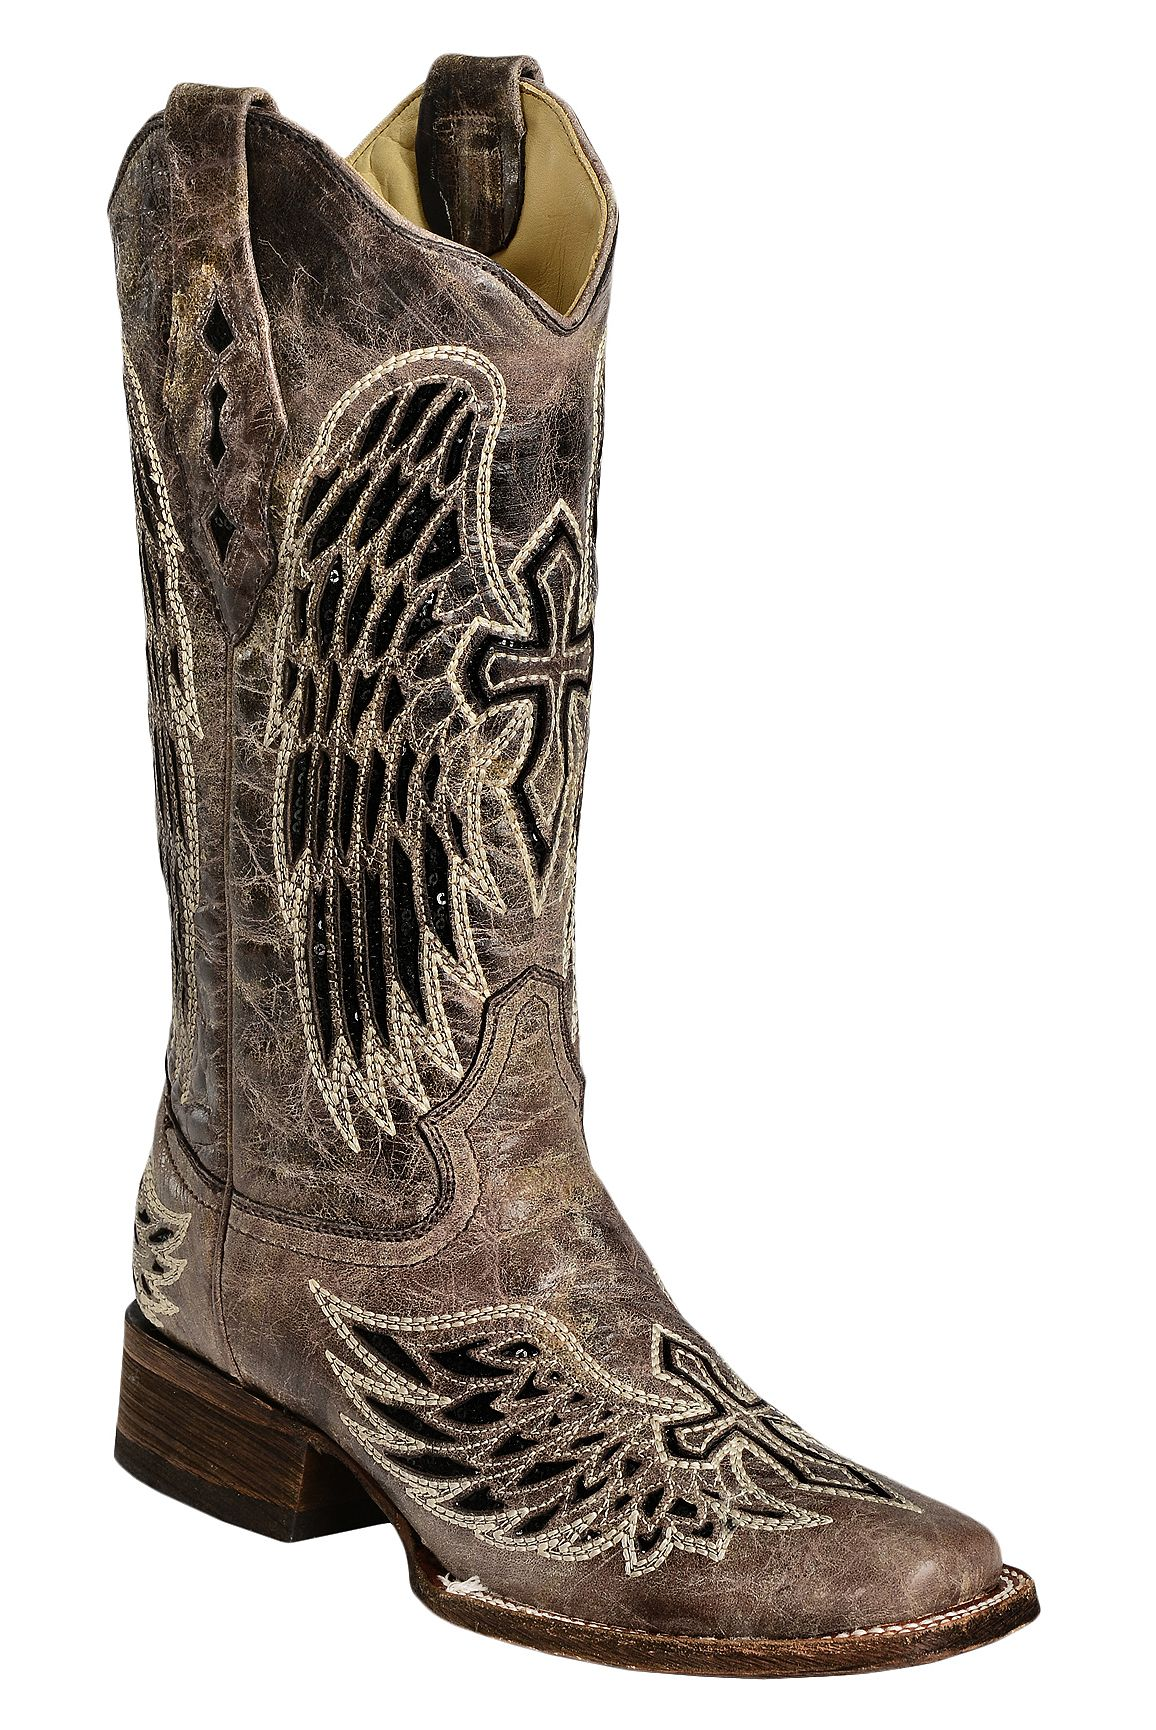 Corral Black Sequin Wing Amp Cross Inlay Cowgirl Boots